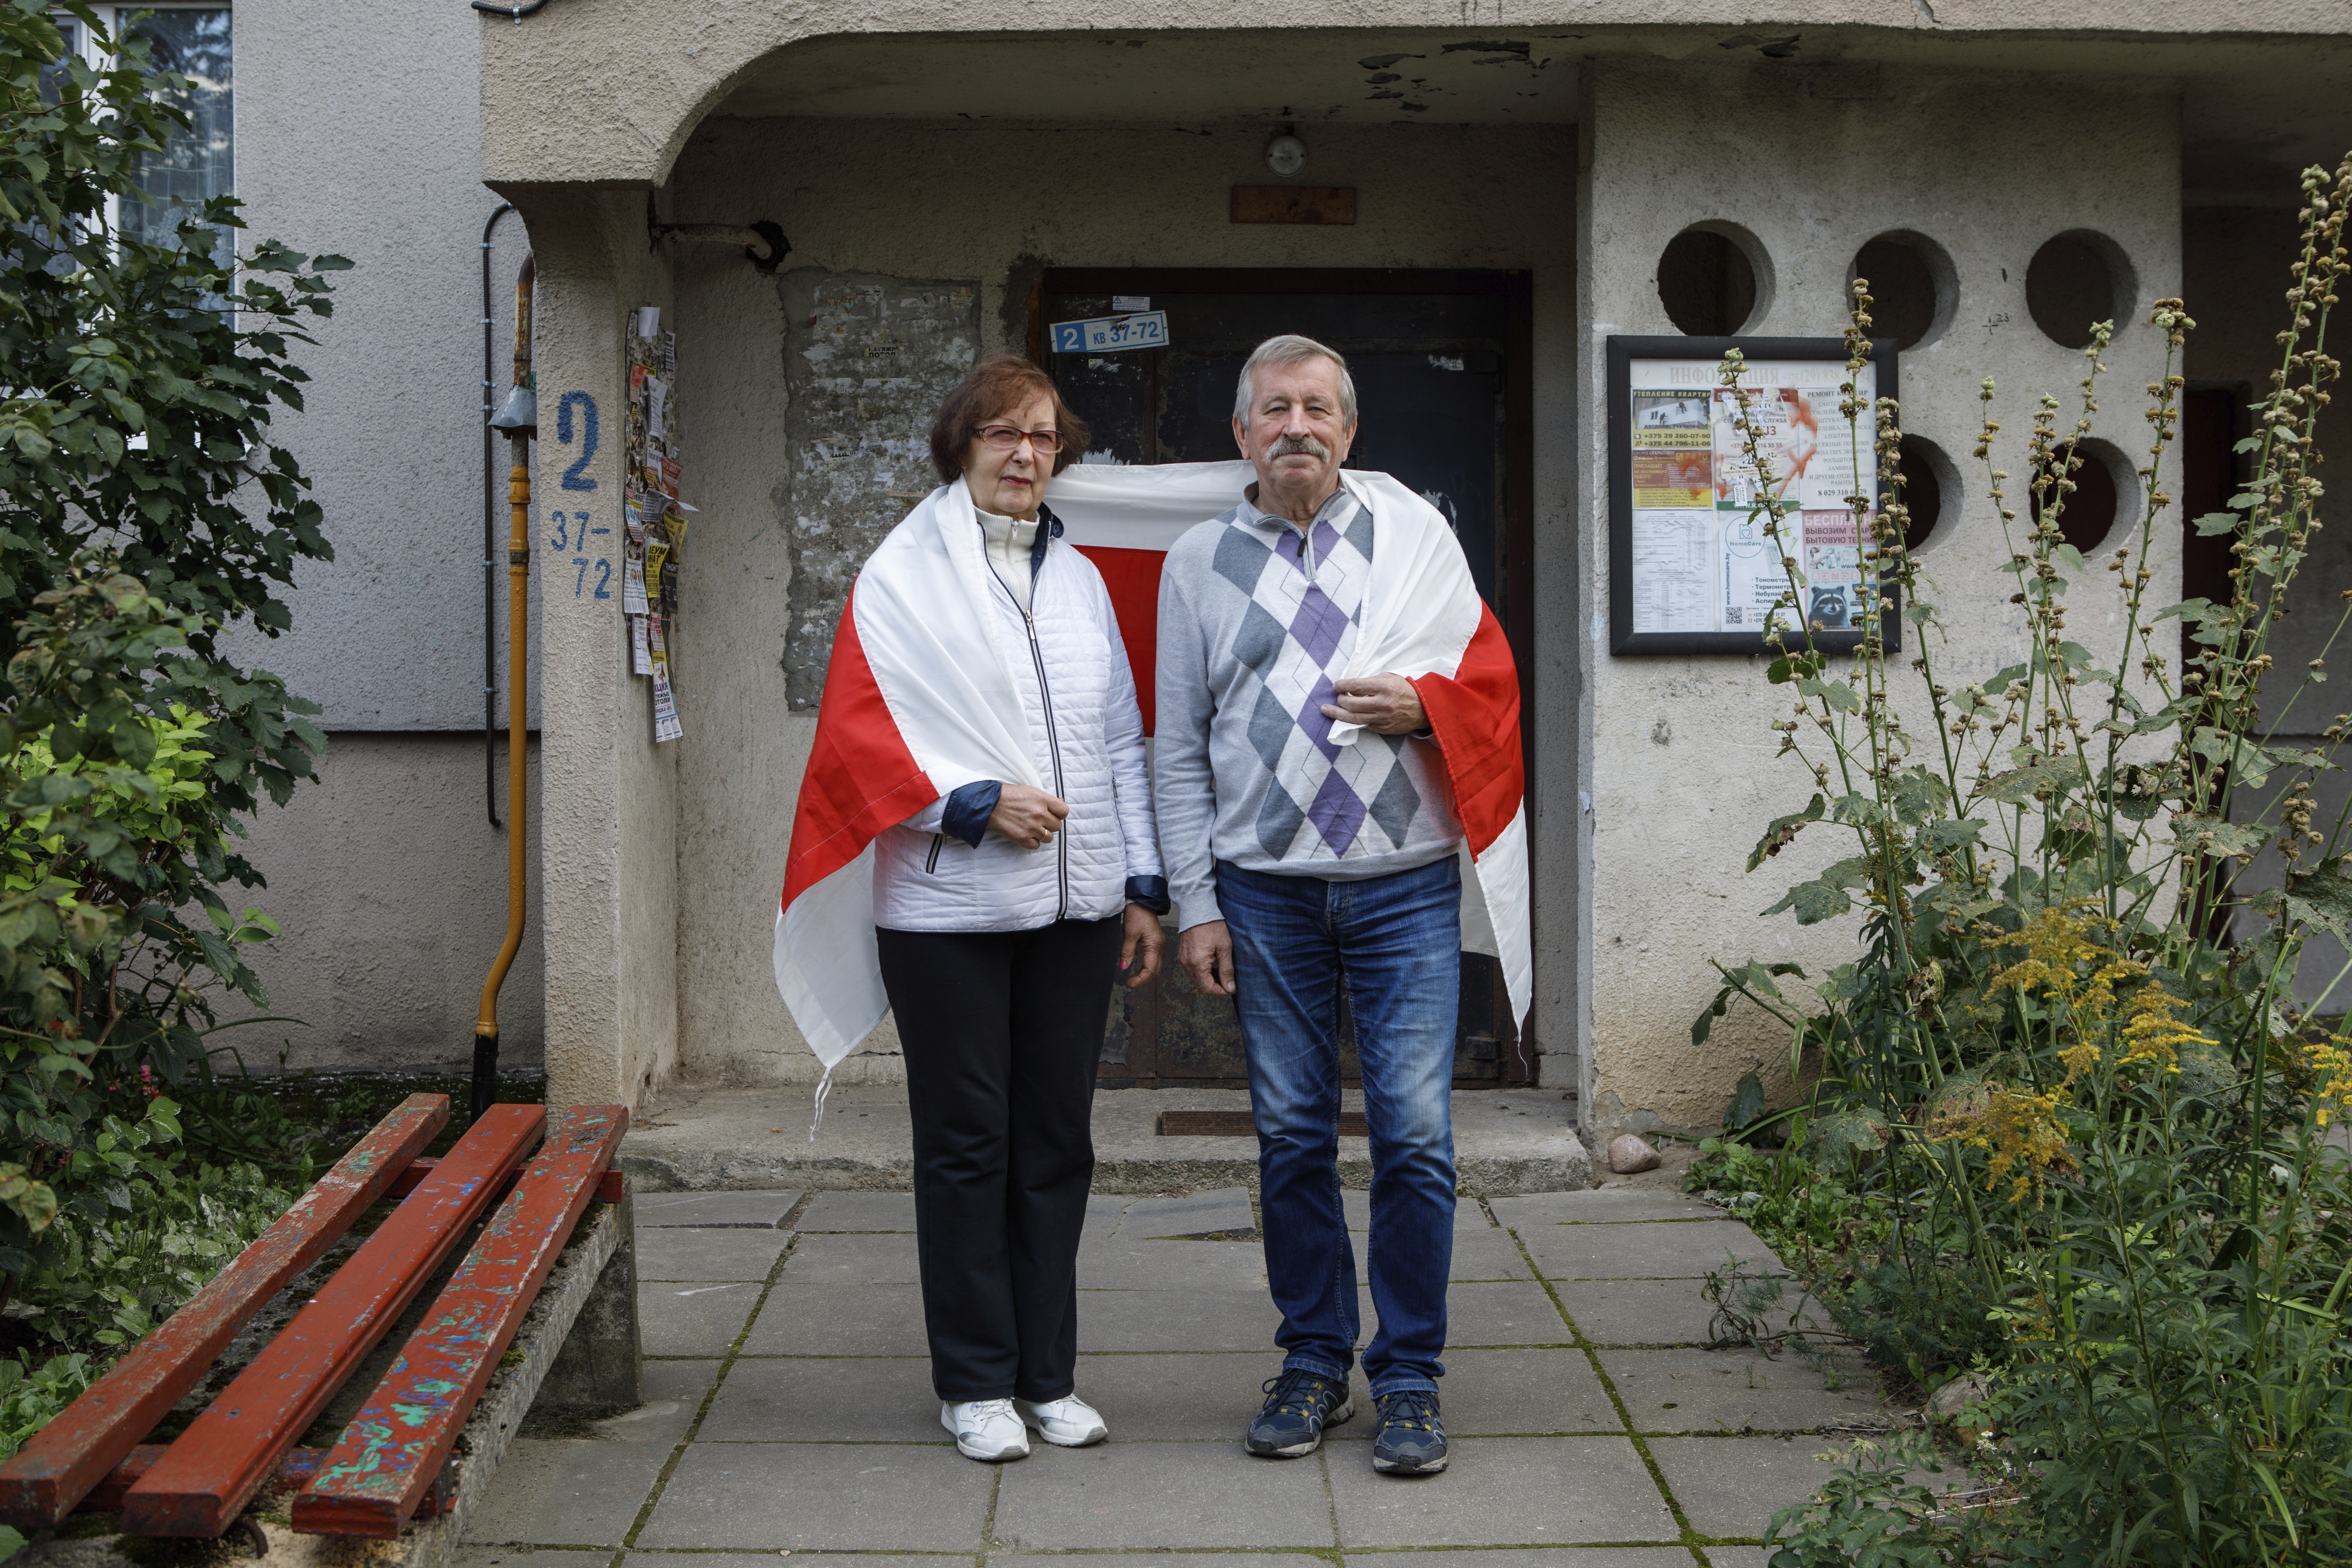 Mikhail Batsyan, 69, and his wife Ludmila Batsyan, 65